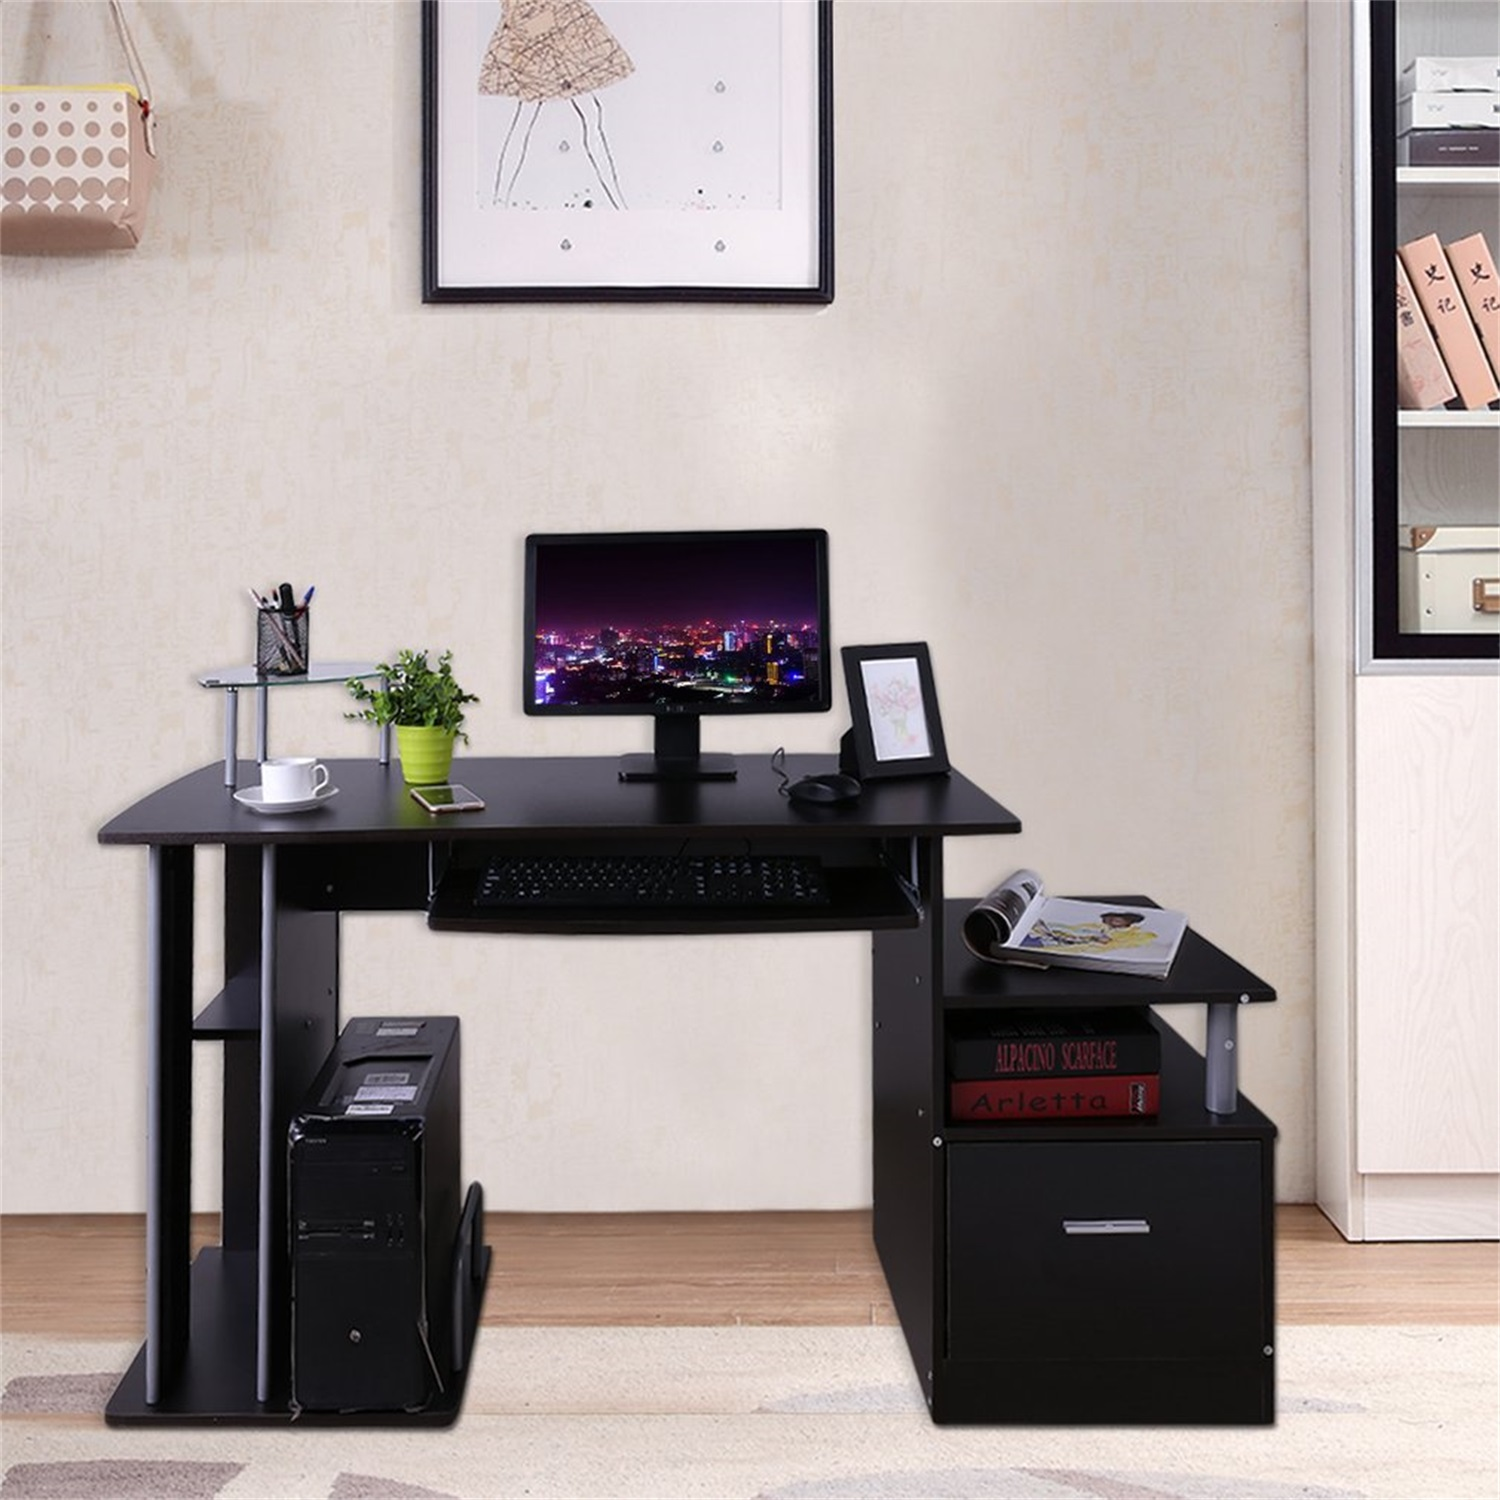 Delicieux CNMODLE Computer PC Table Home Study Office Table Work Desk Workstation  Corner Desk Furniture With Keyboard